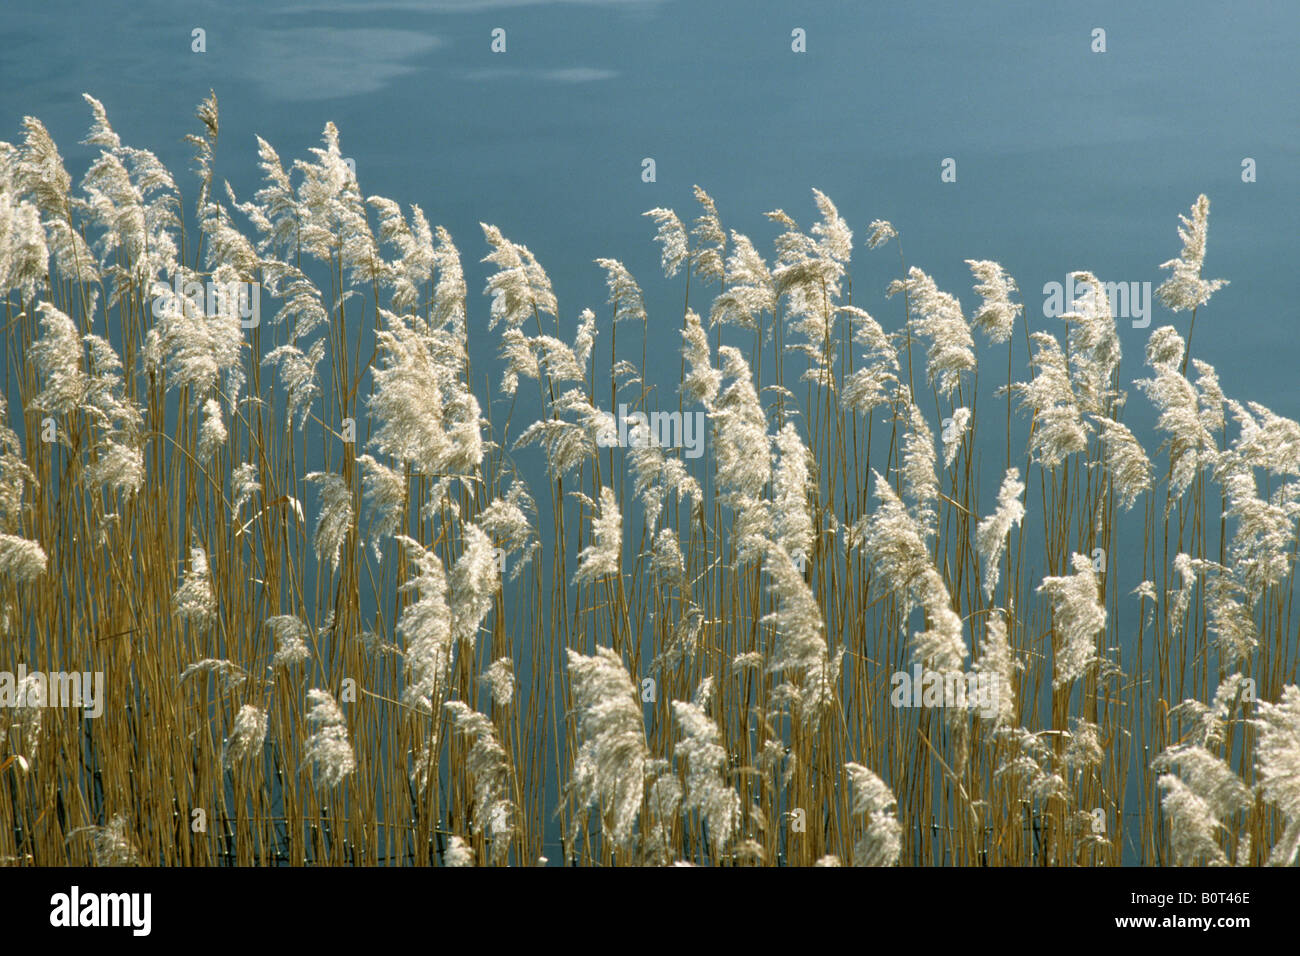 Common Reed, Reed Grass (Phragmites communis), seed stalks - Stock Image